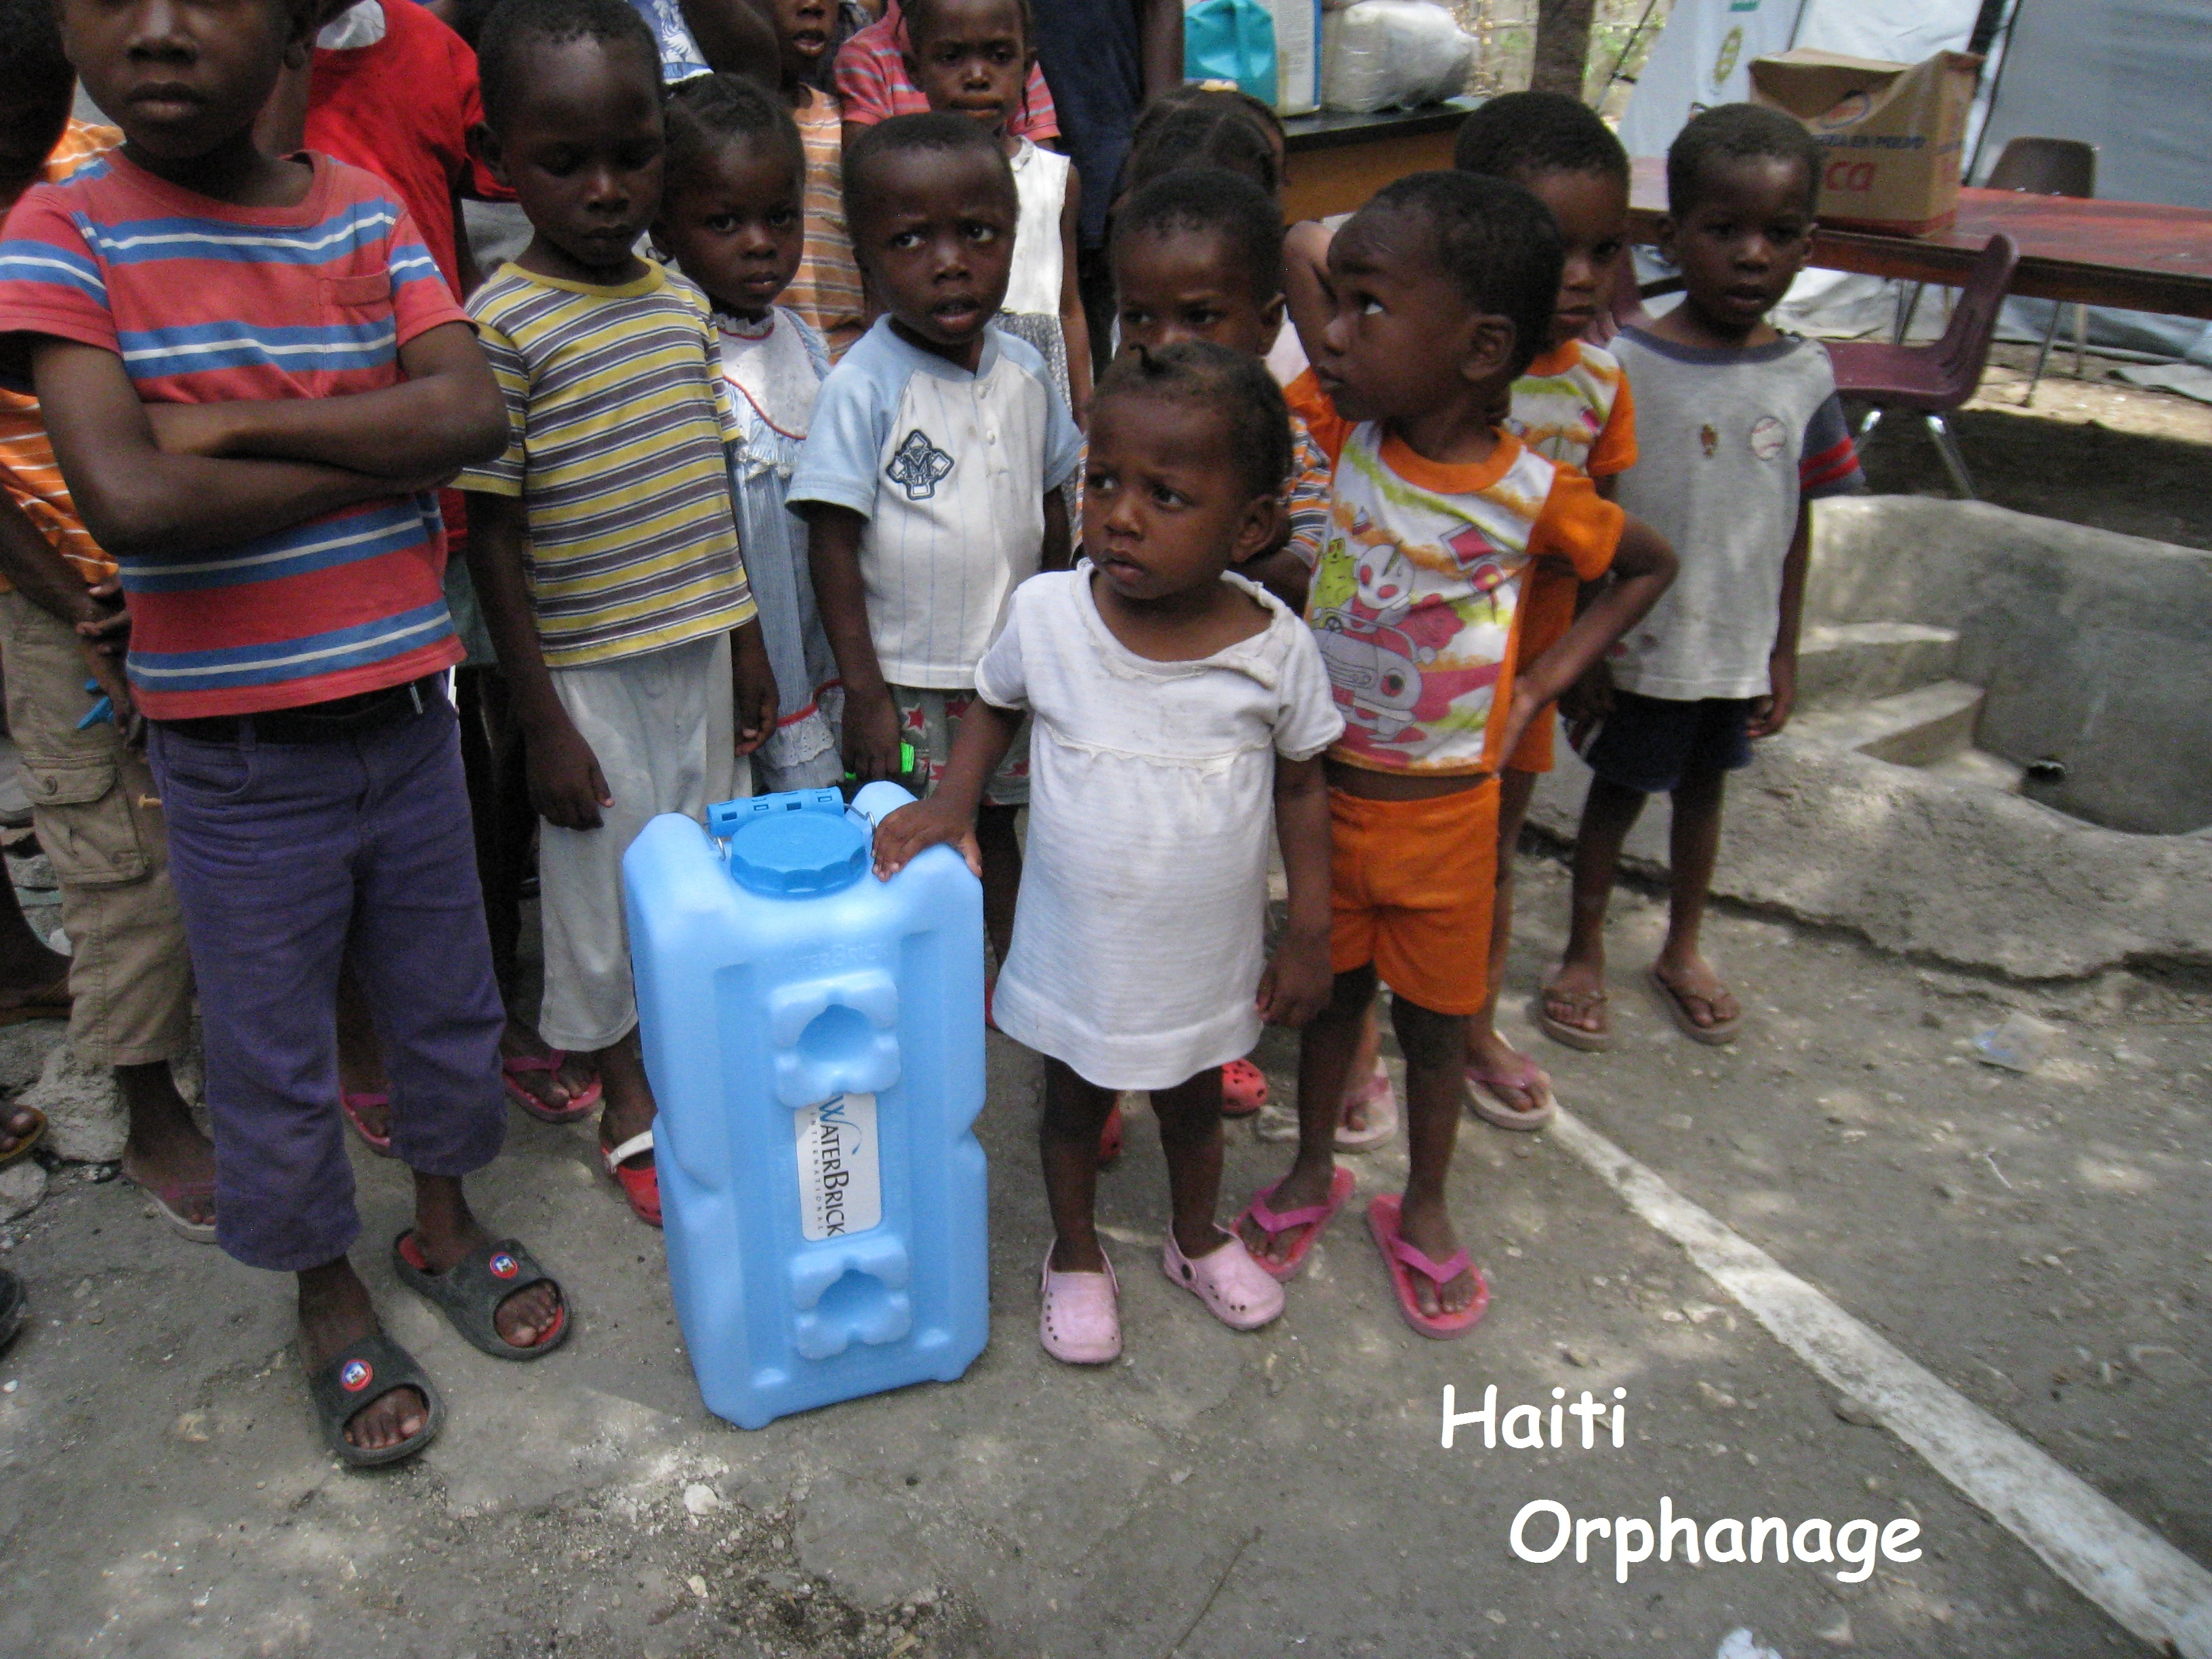 WaterBrick International, Inc. is supporting a small orphanage of about 18 children in the downtown area of Port-au-Prince, Haiti.  Since the earthquake in January 2010, WaterBrick has been directly delivering water & food storage containers and transitional, basic housing to Haitians in need.